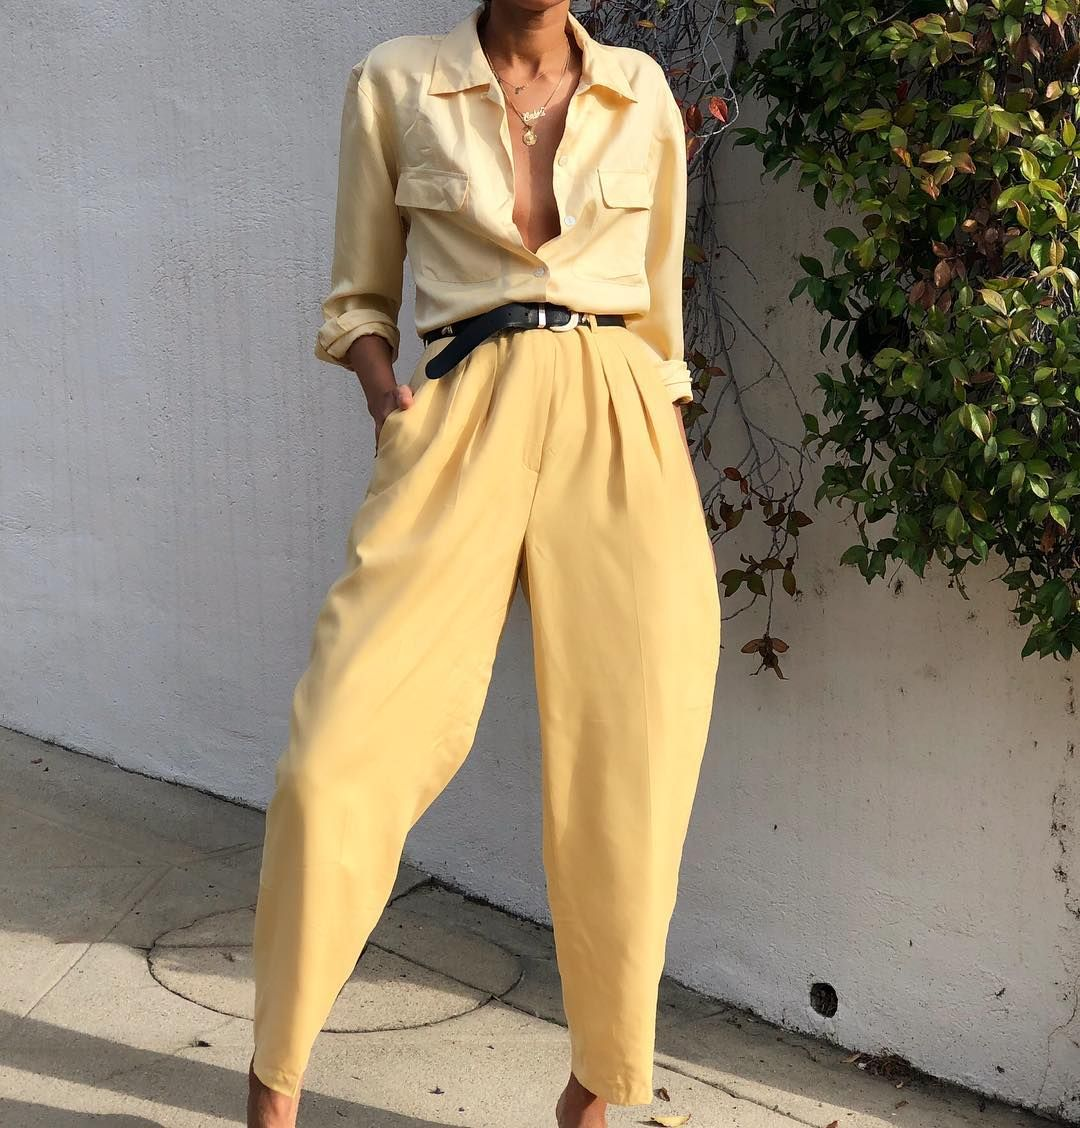 """067130c1b83a Elia Vintage on Instagram  """"Butter silk high waisted pleated trousers. Size  28 waist- also looks amazing on smaller frames  78 PANTS SOLD Pale yellow  silk ..."""